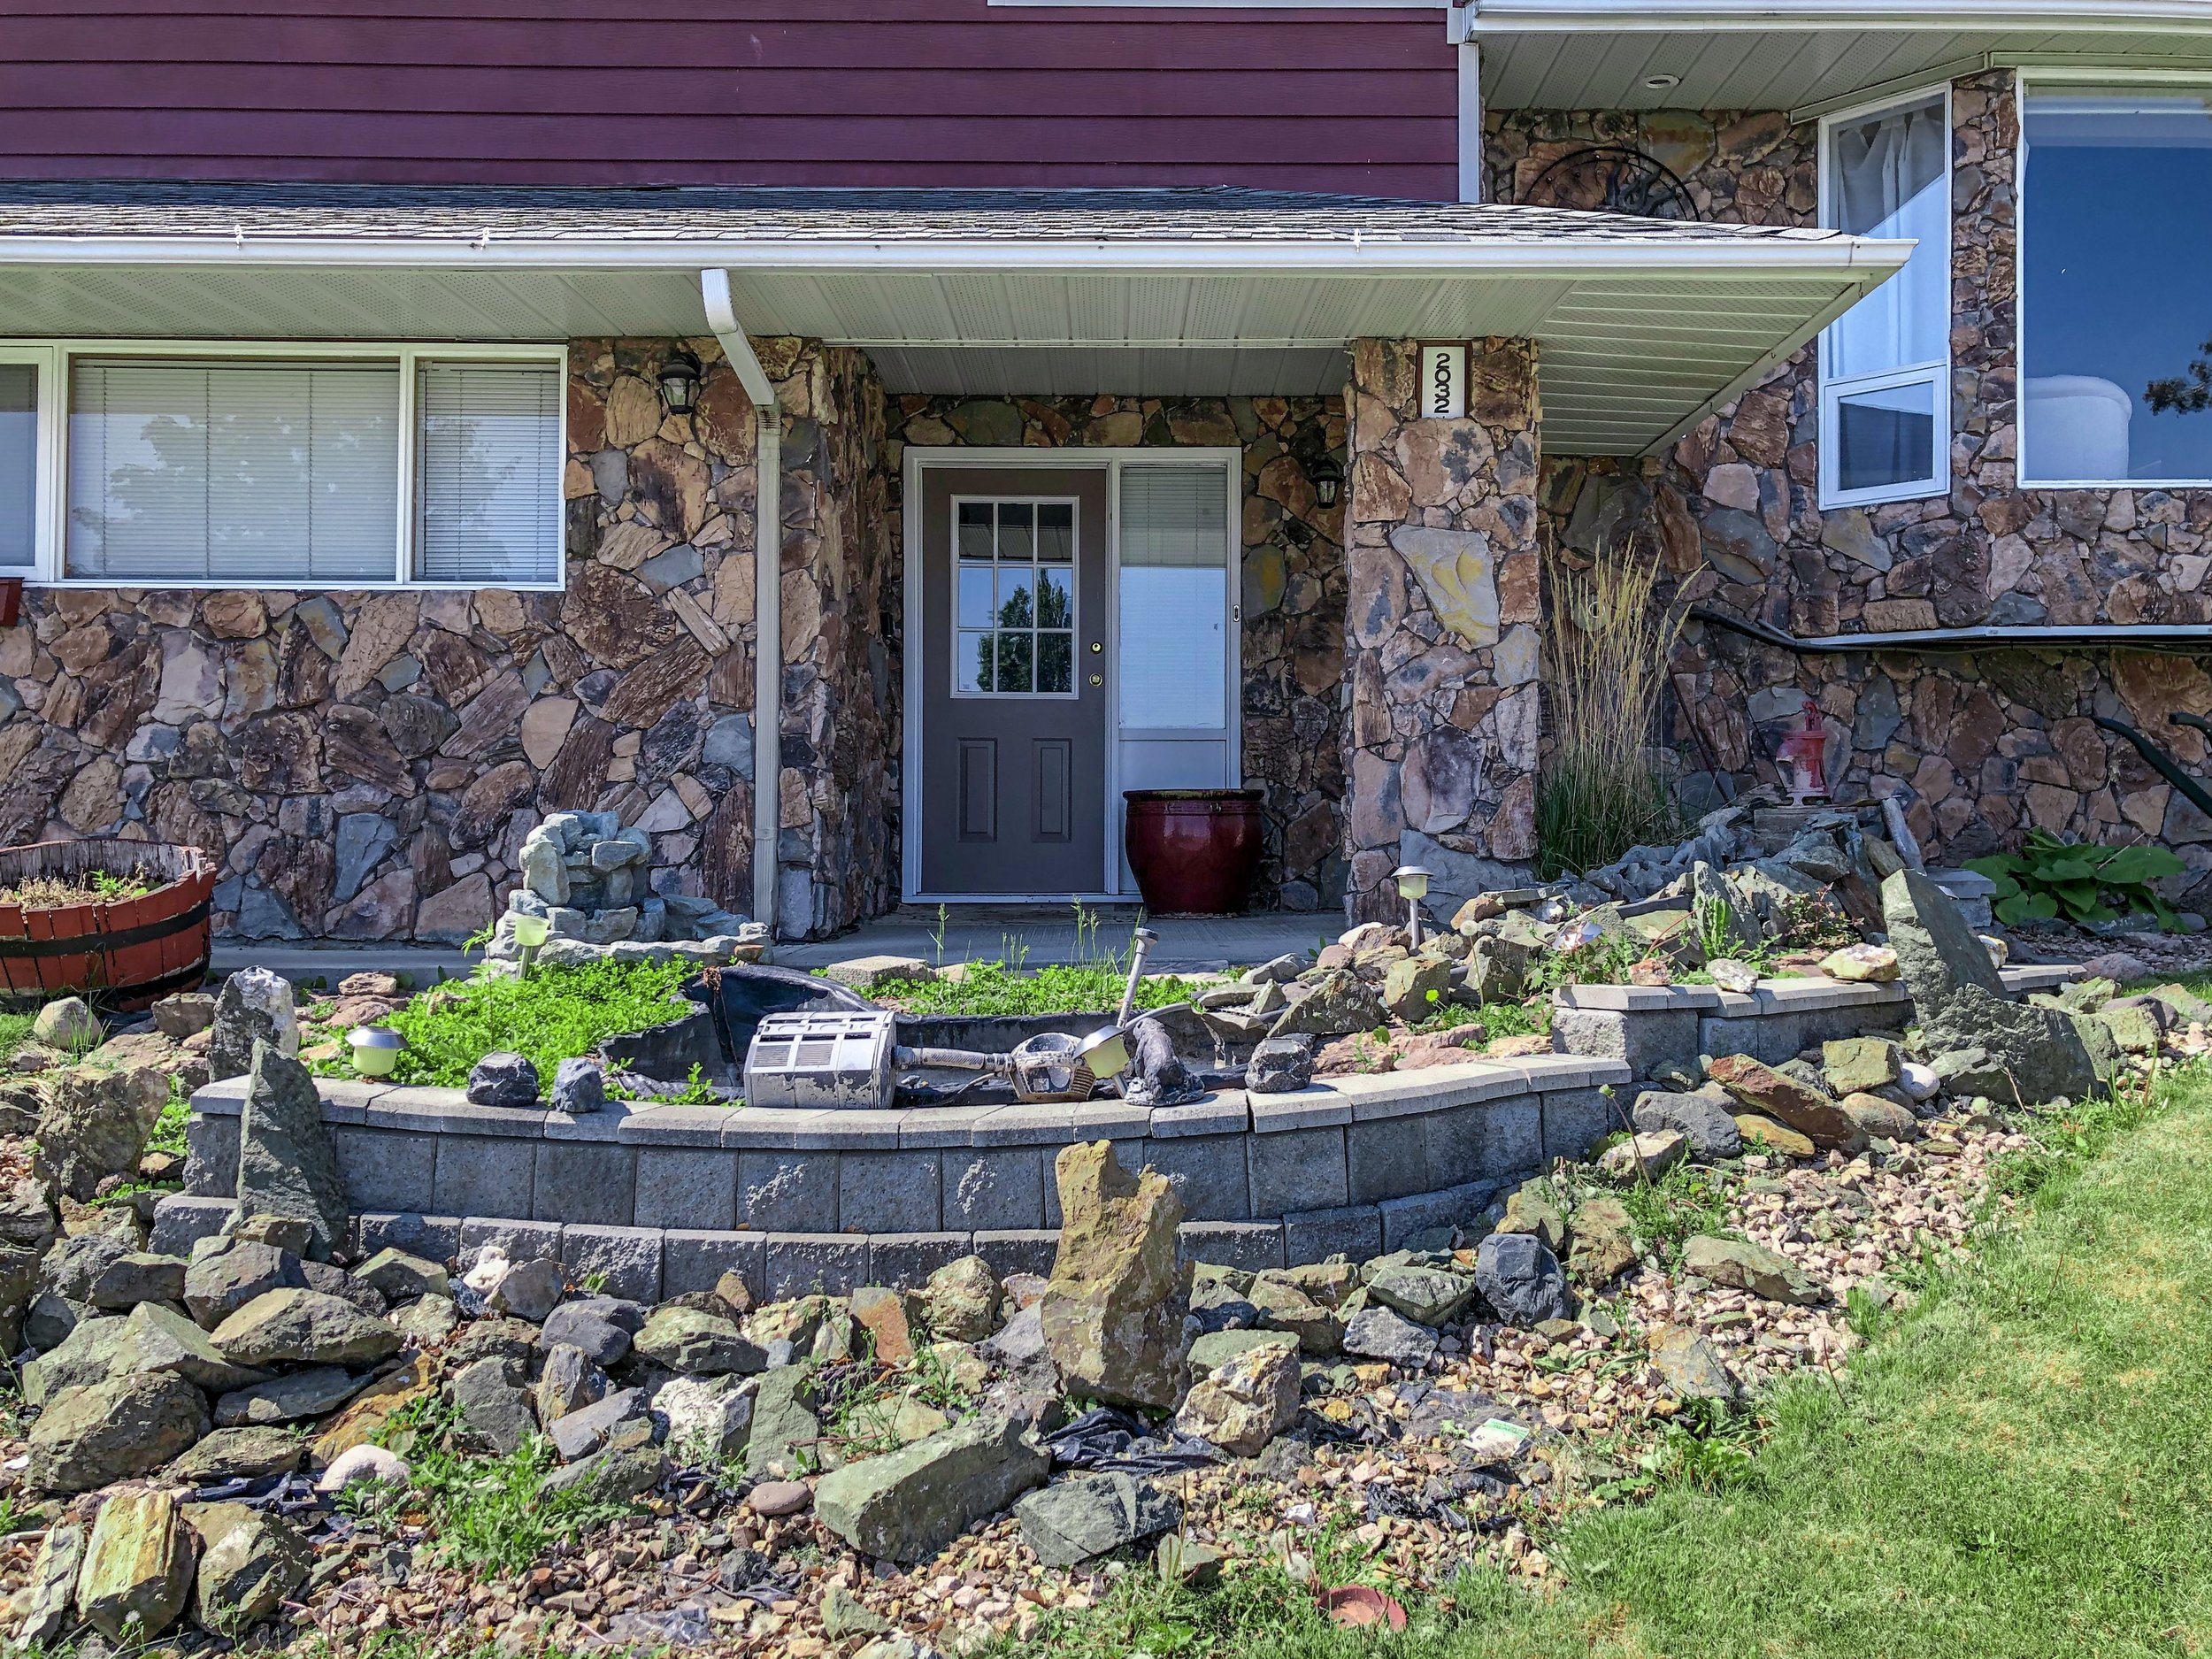 2032-sifton-avenue-kamloops-bc-aberdeen-for-sale-exterior-front-entrance.jpg